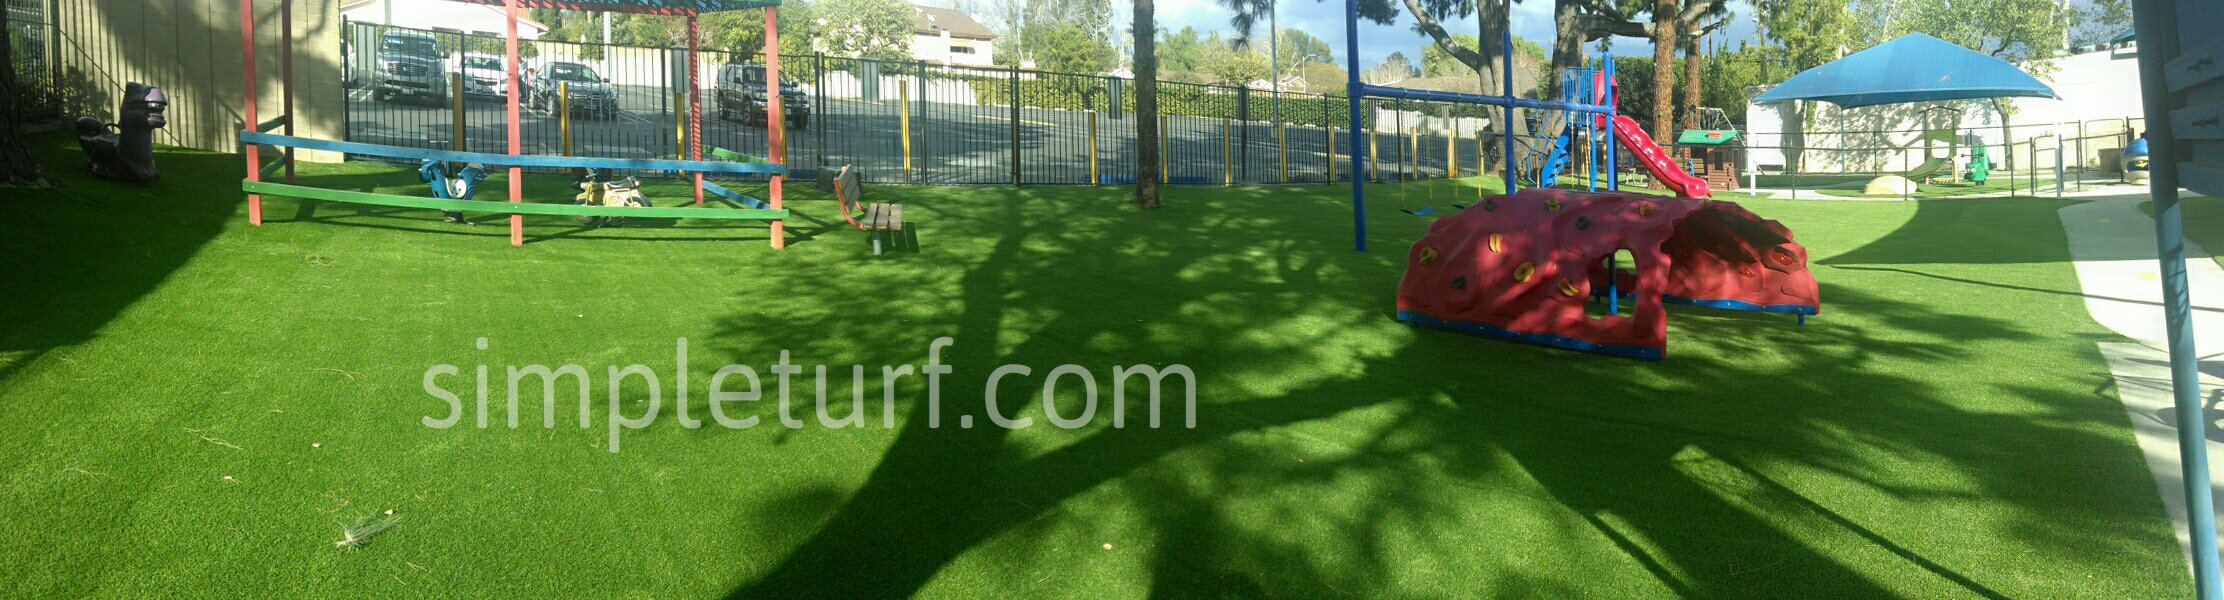 Playground after installation of SimpleTurf Artificial Grass